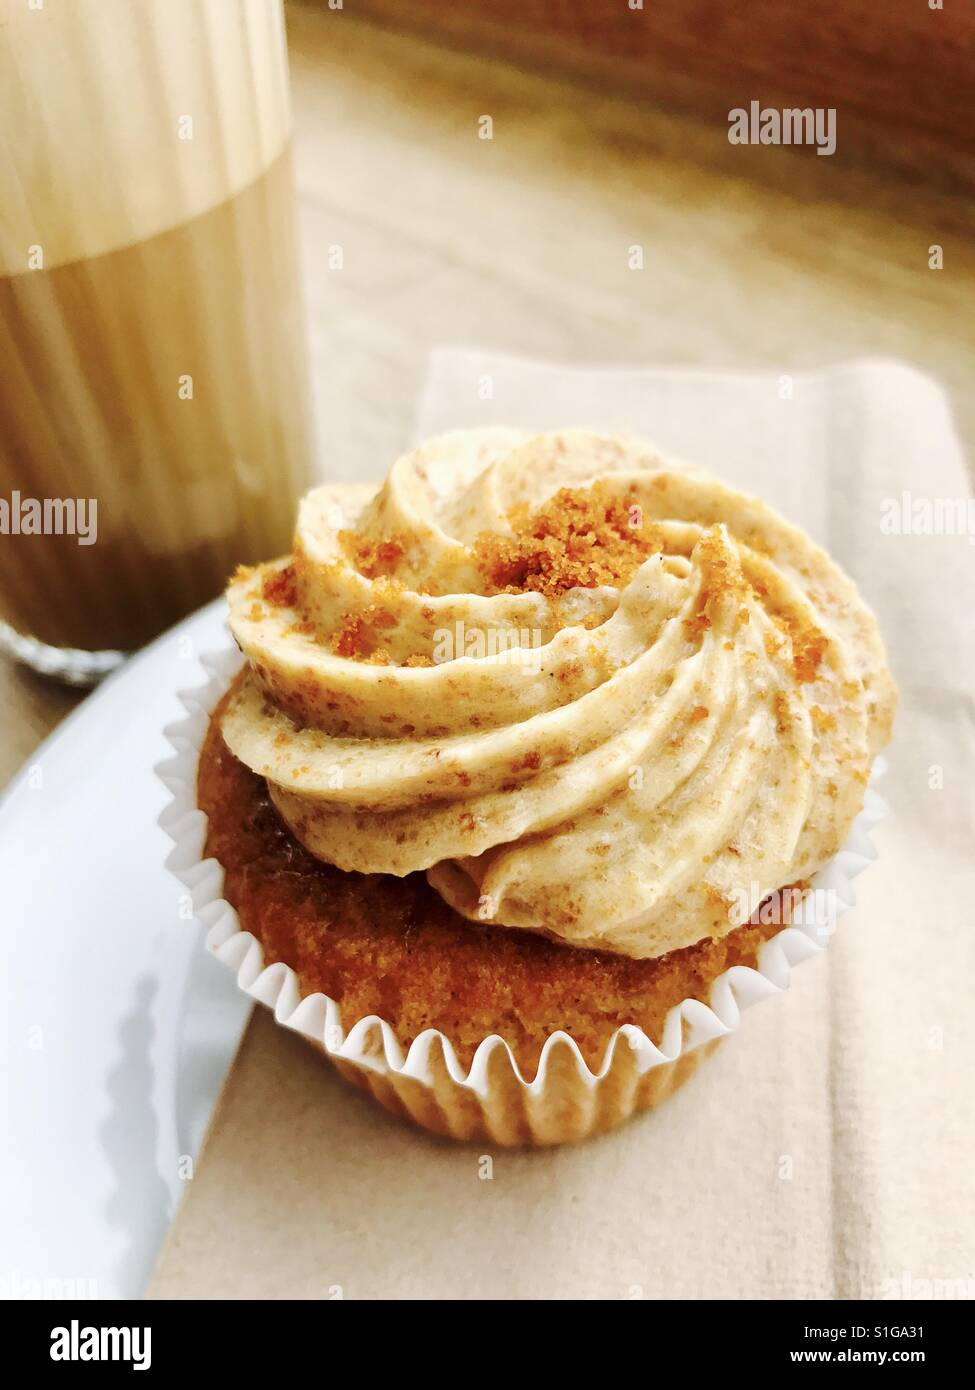 Toffee cup cake and coffee - Stock Image